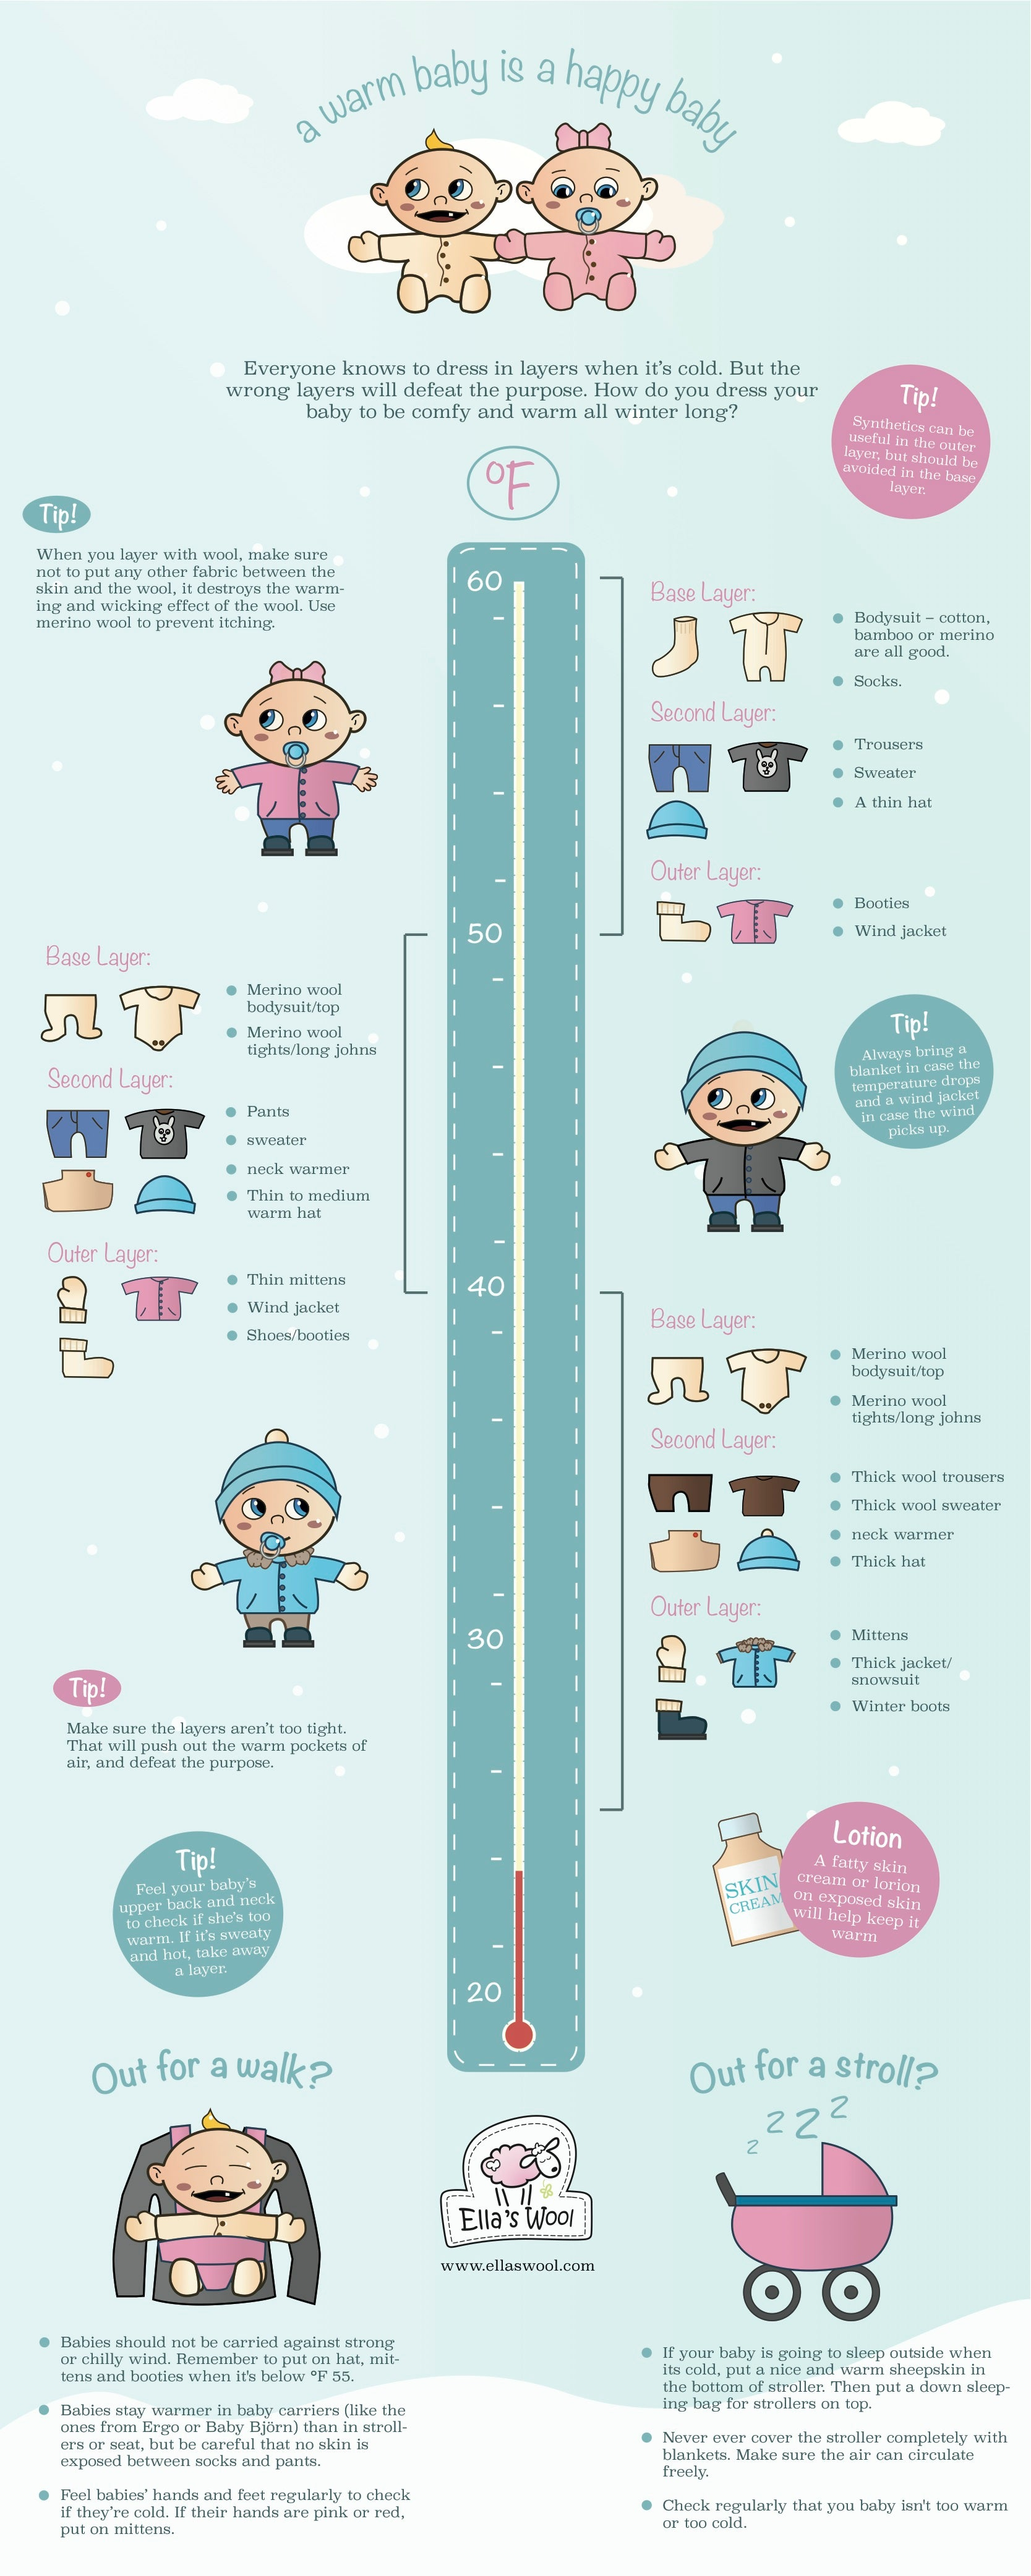 How to dress your baby for cold weather (infographic)